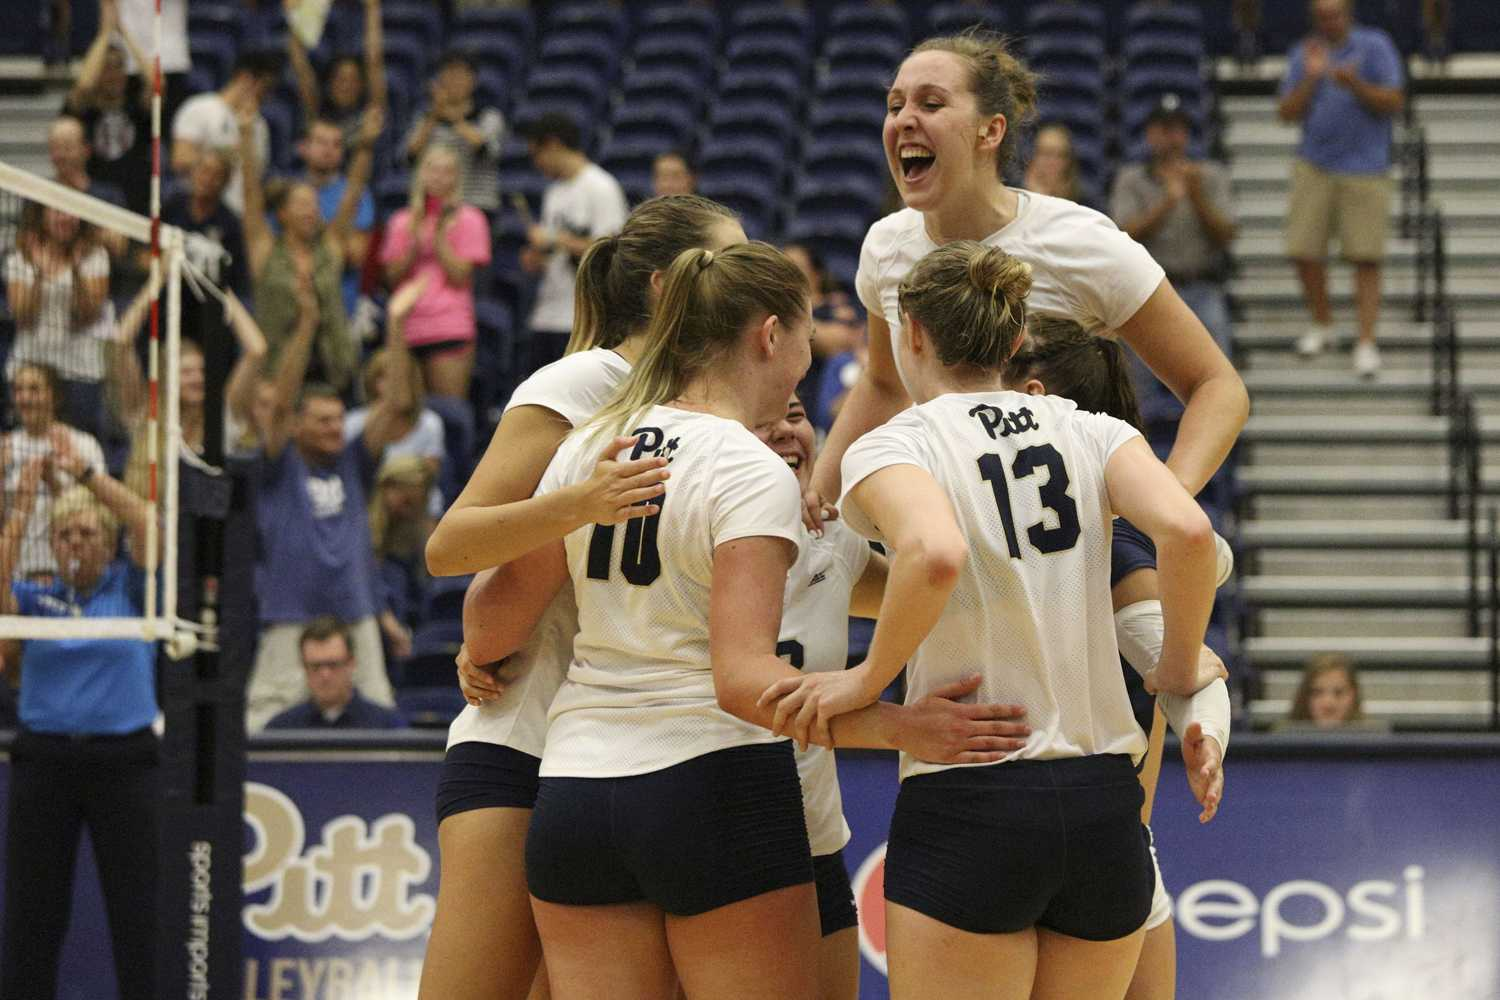 Pitt women's volleyball team finished their matchup against Boston College with a final score of 54-40. (Photo by Thomas Yang | Senior Staff Photographer)